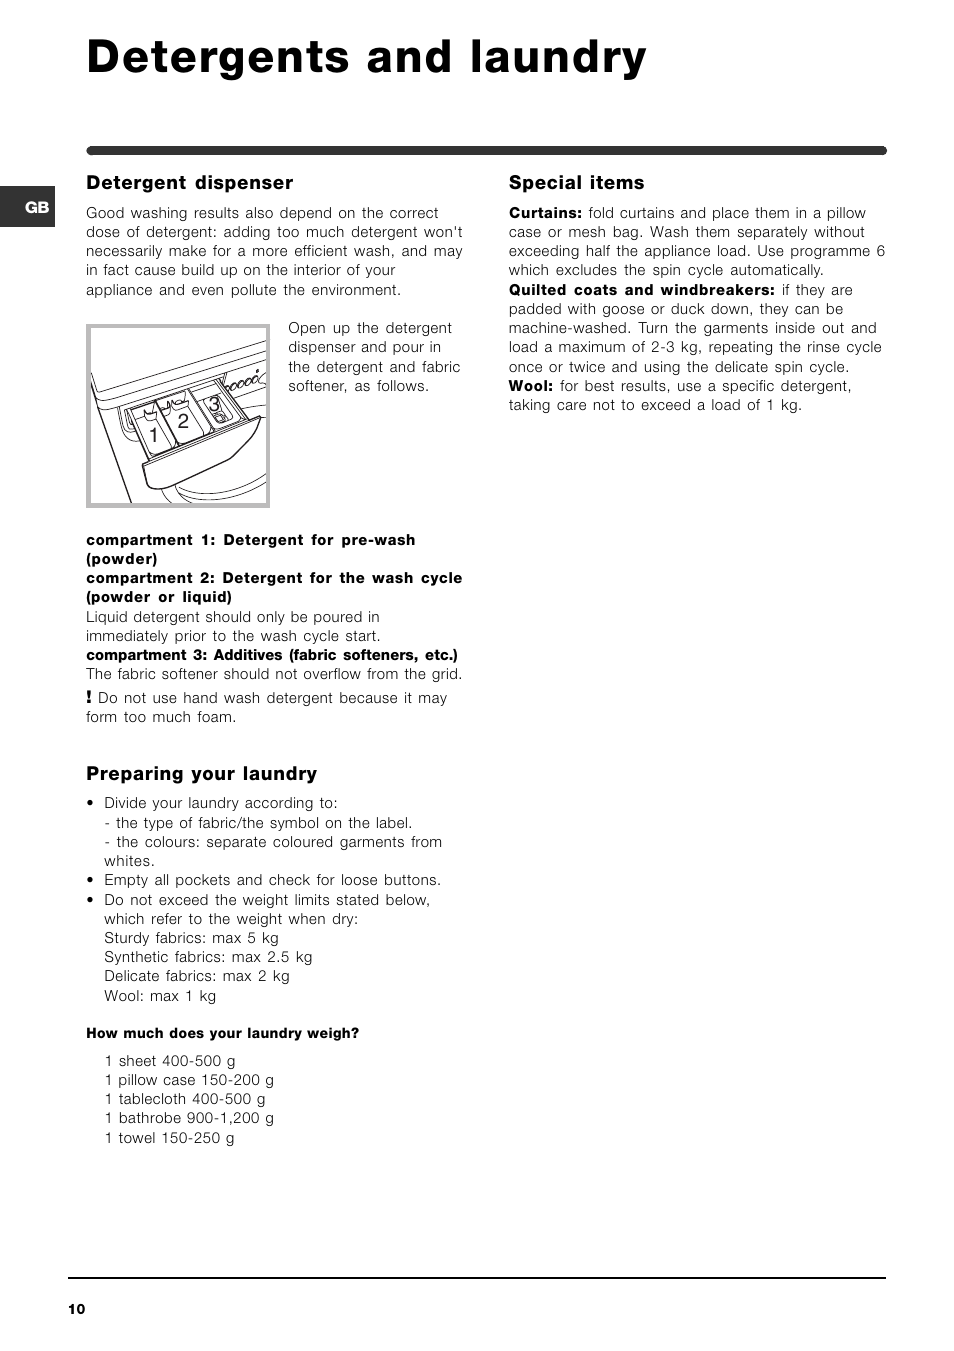 Detergents and laundry indesit widl 146 user manual page 10 16 buycottarizona Choice Image